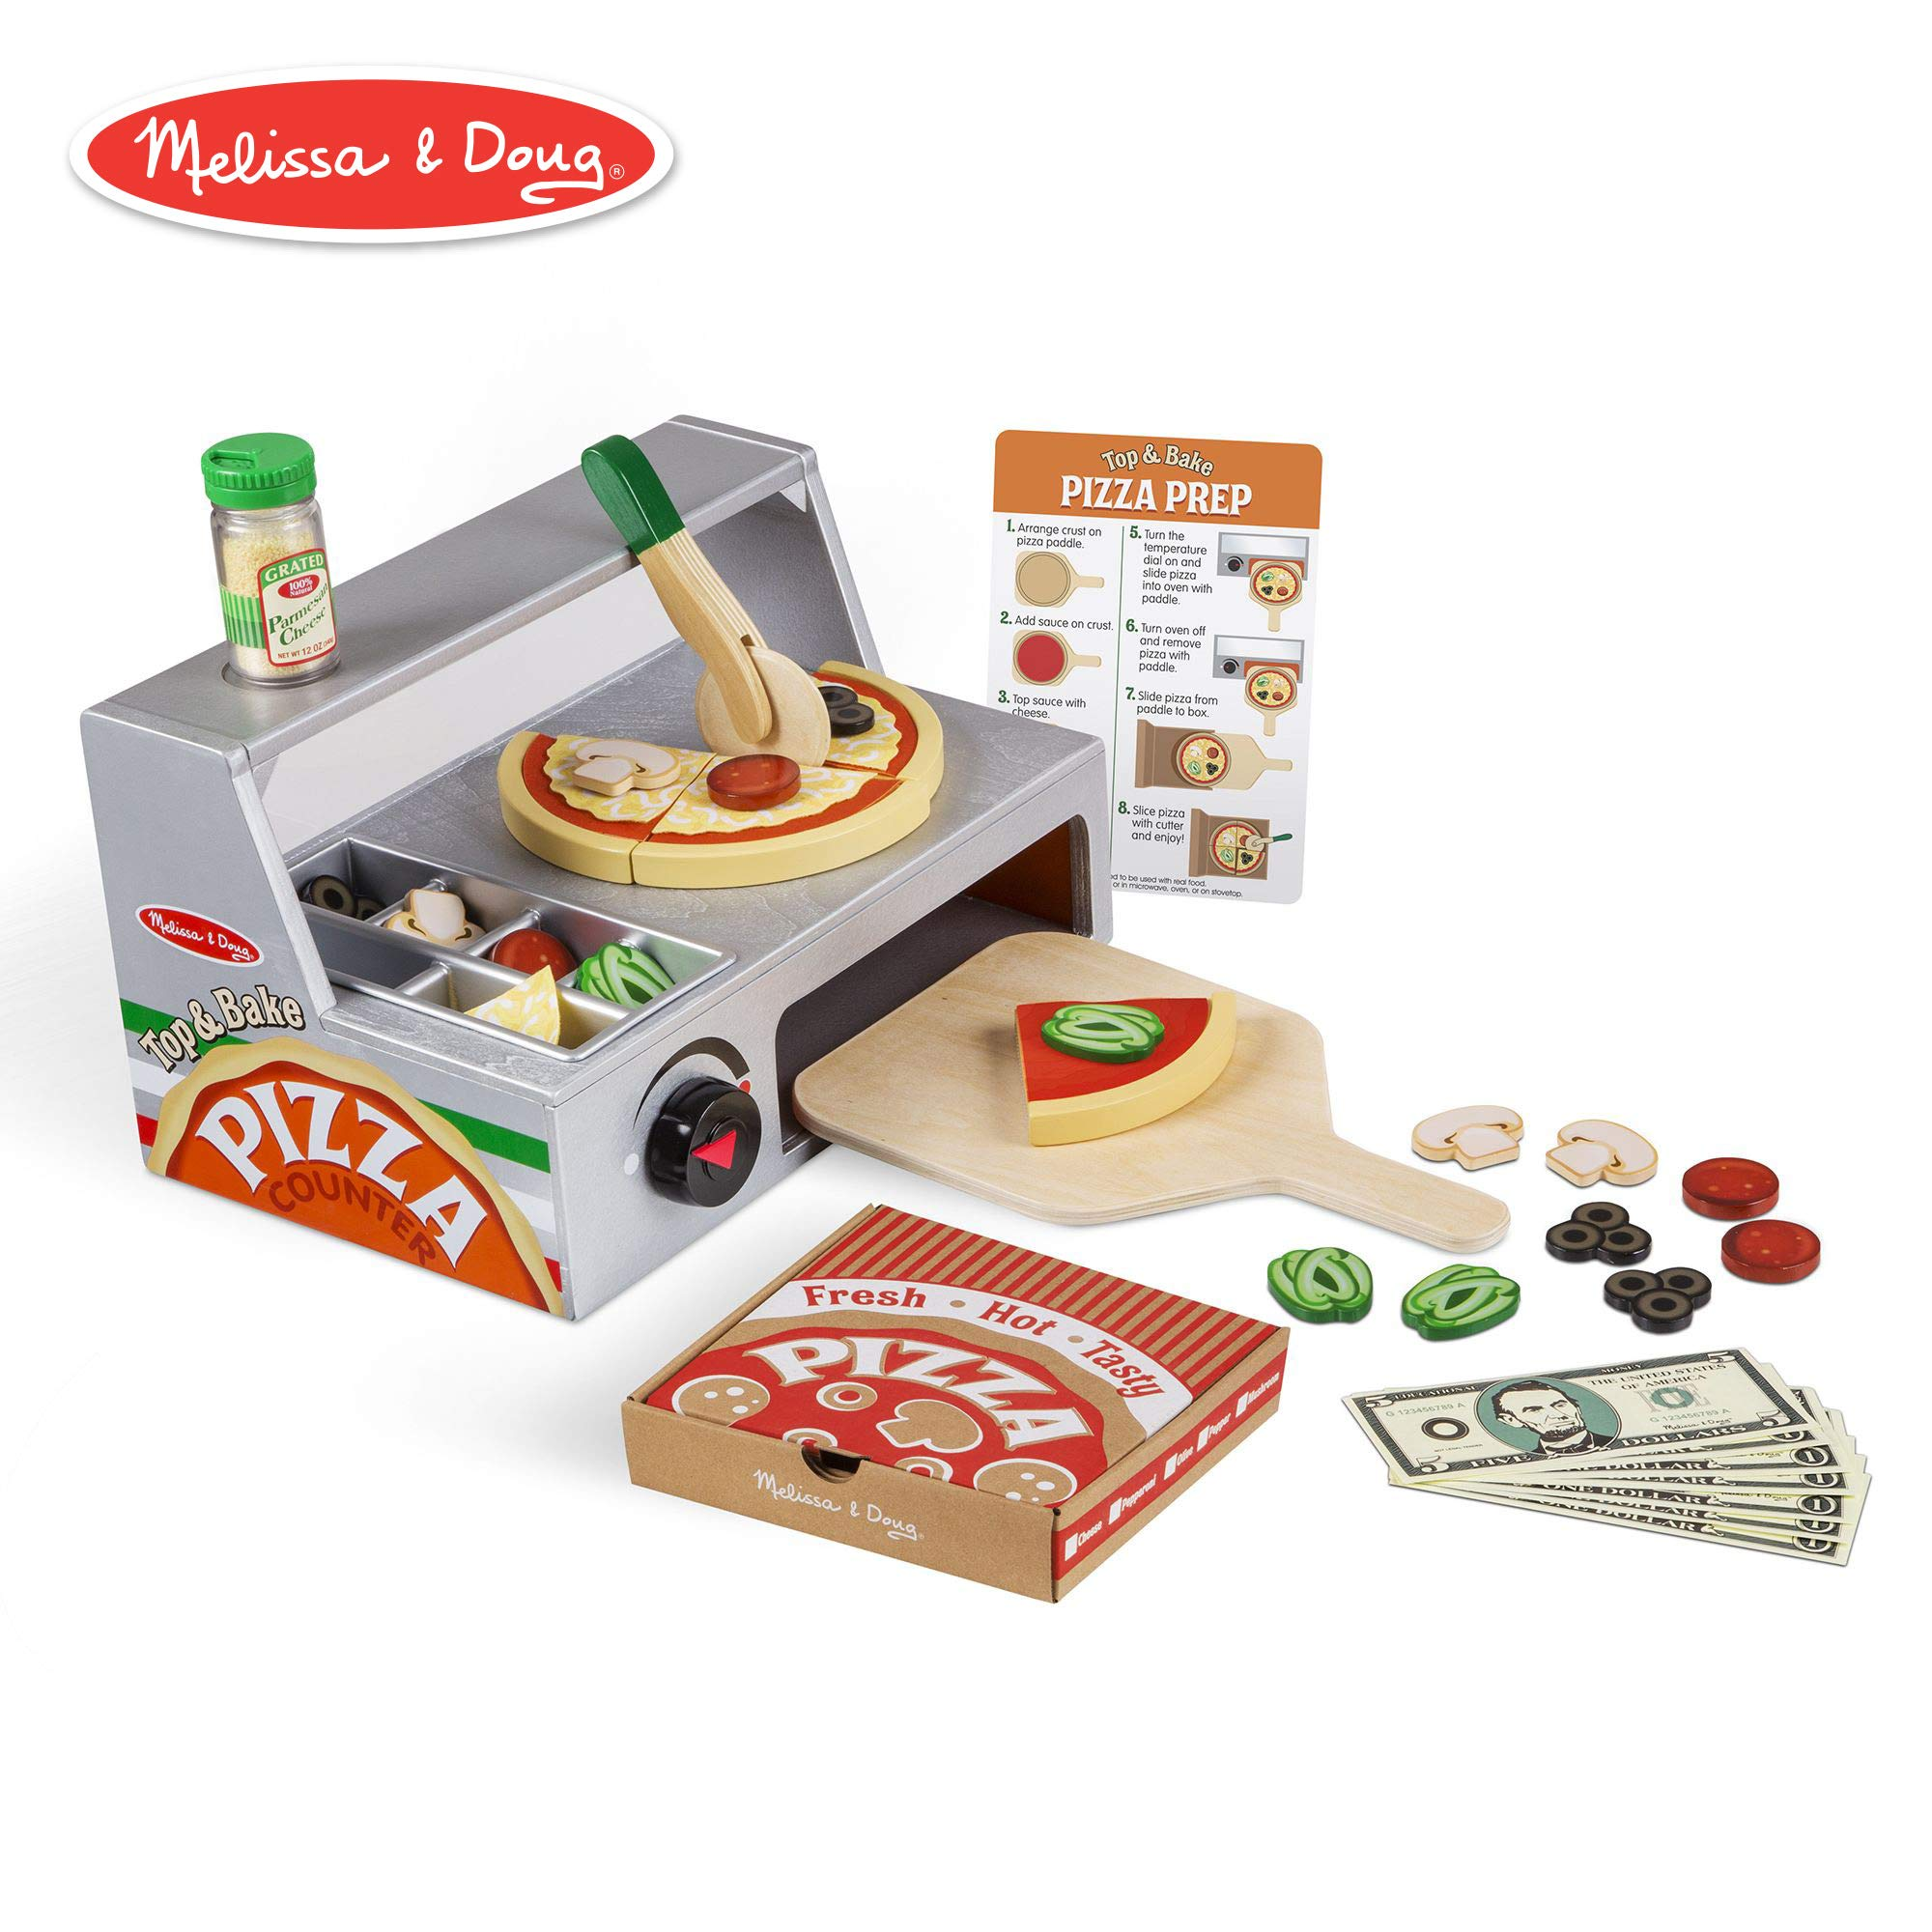 Melissa & Doug Top and Bake Wooden Pizza Counter Play Food Set (Pretend Play, Helps Support Cognitive Development, 34 Pieces, 7.75'' H x 9.25'' W x 13.25'' L) by Melissa & Doug (Image #1)